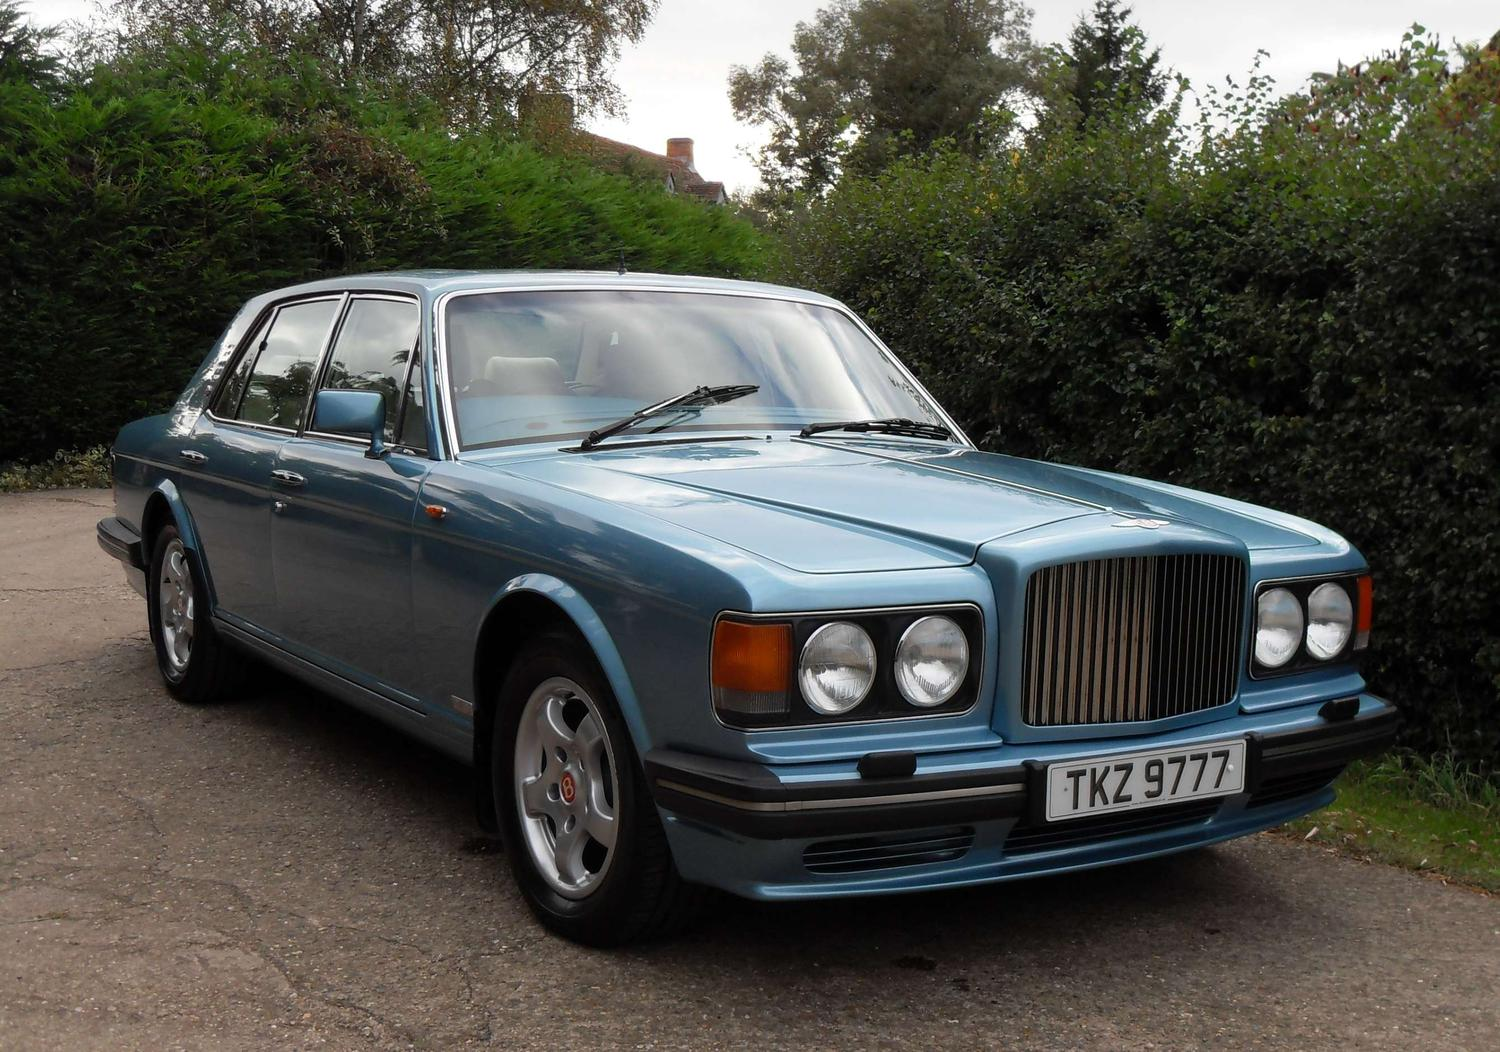 Bentley Turbo R - 10 cool cars for under £10,000 (The Car Expert)